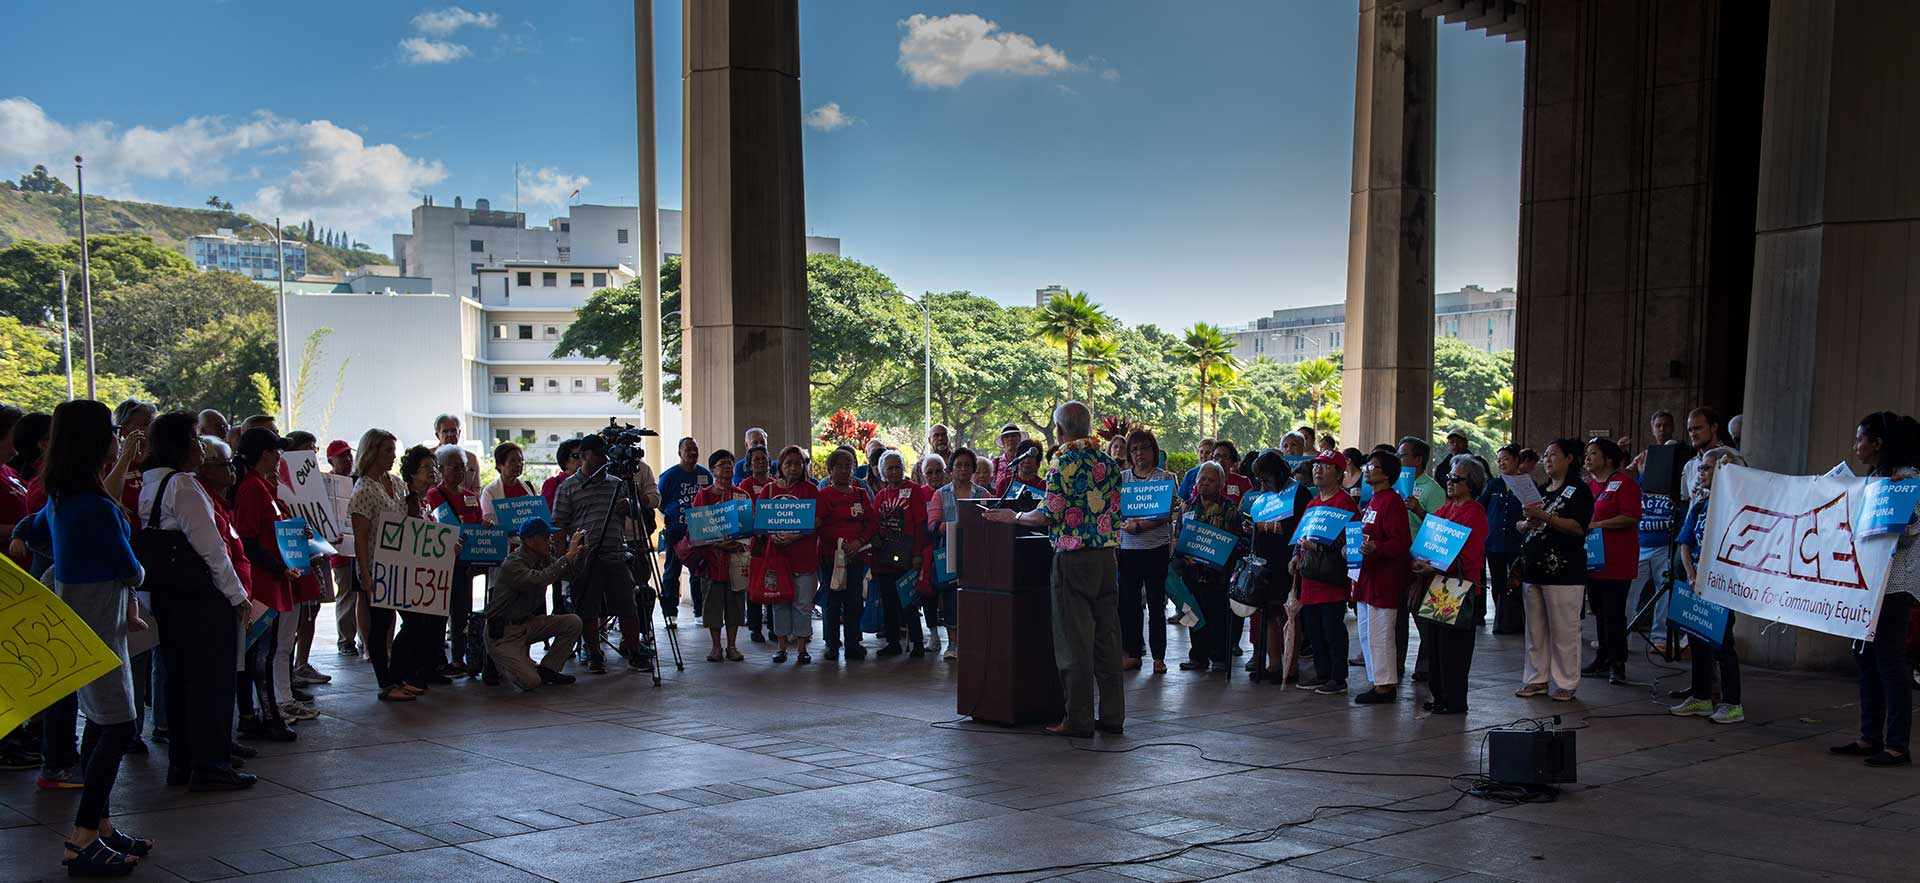 A Kupuna Caregivers rally at the Hawaiʻ State Capitol